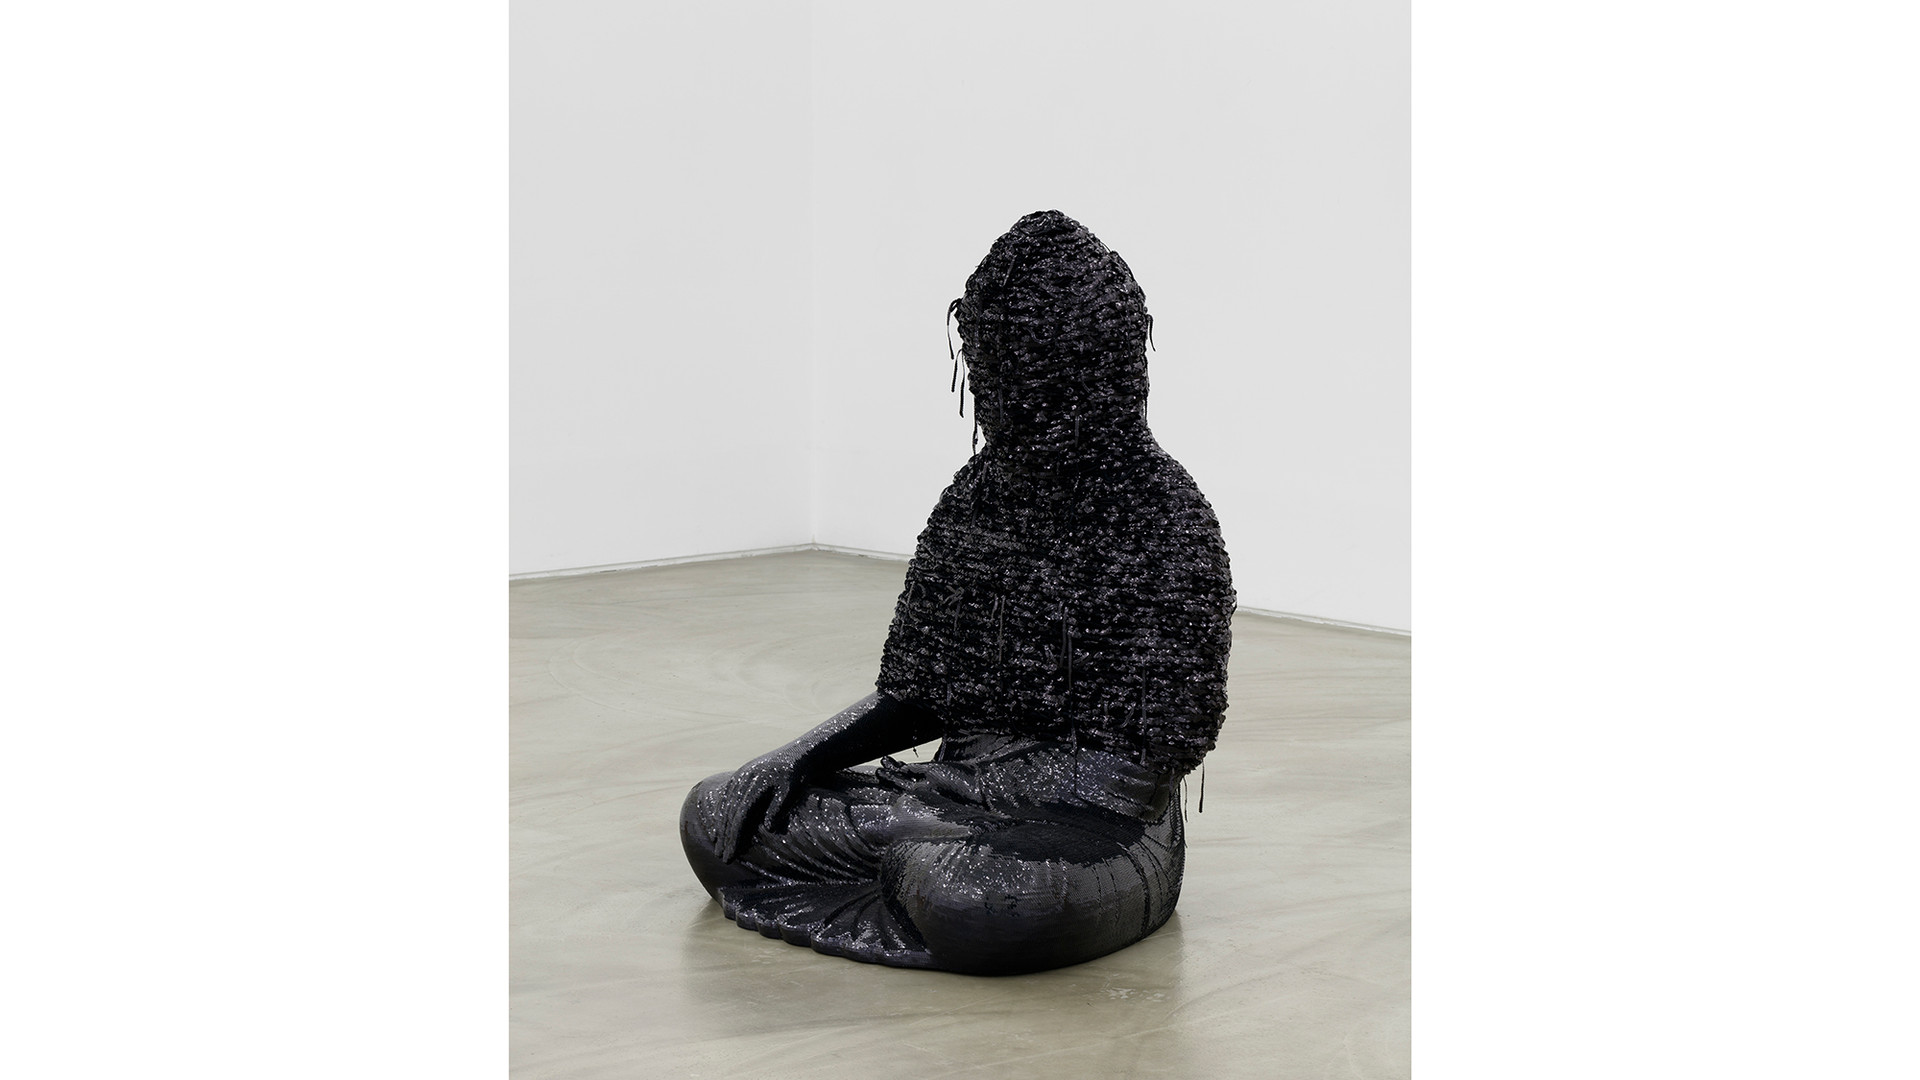 Noh, Sang-Kyoon, For the Worshipers #160601 H-black, 2014-2016, sequins on the Buddha statue of polyester resin and fiberglass, 120x93.5x78cm